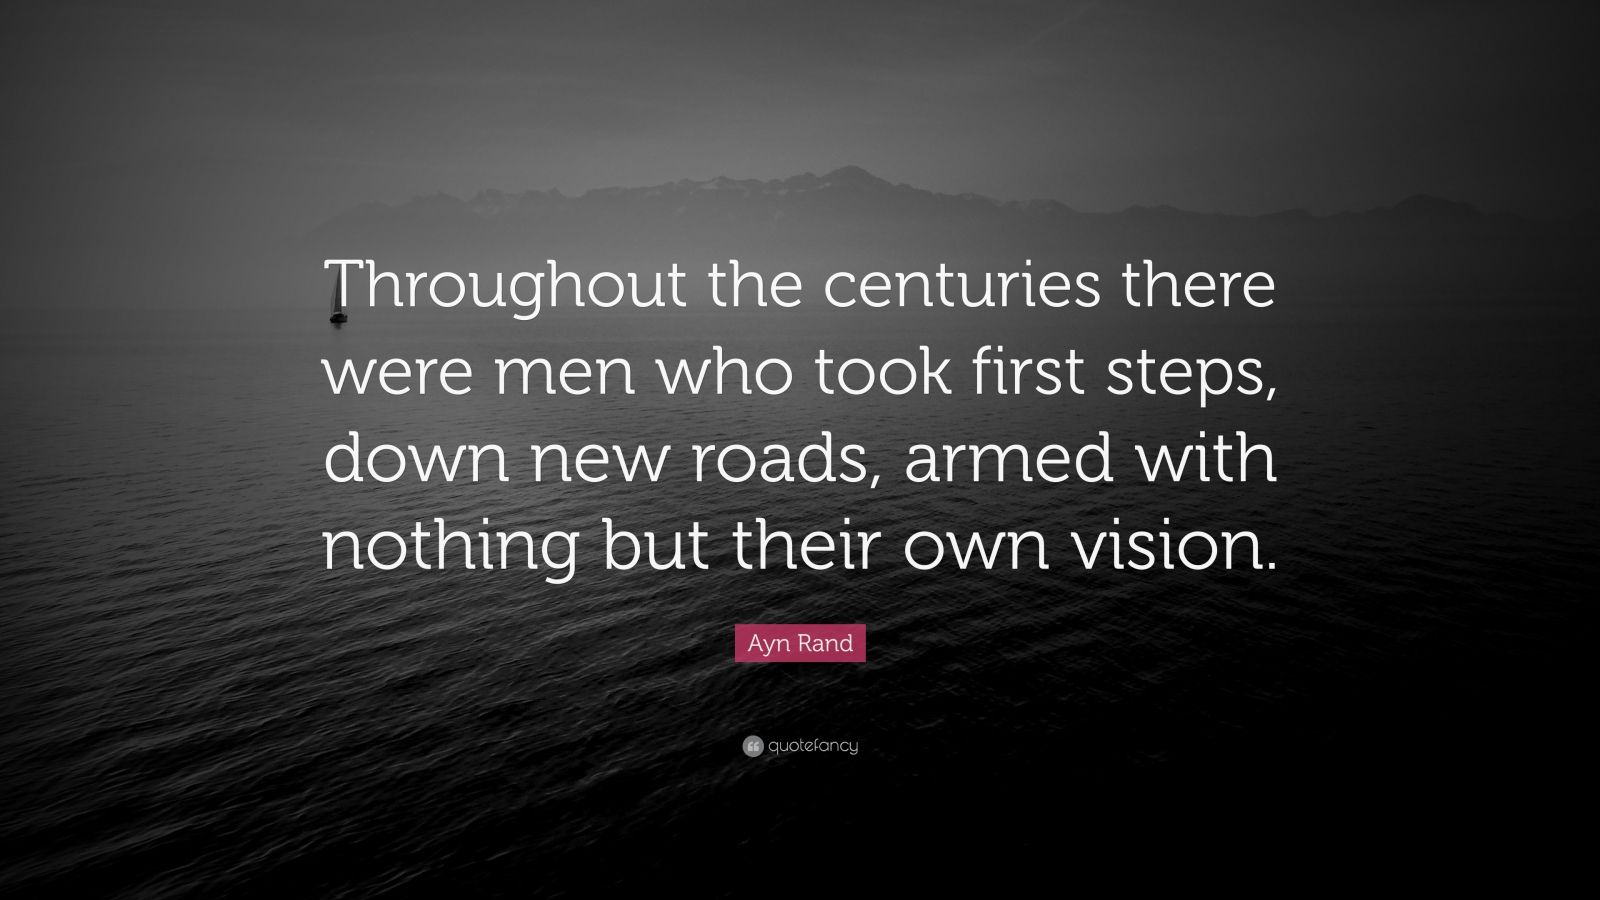 """Ayn Rand Quote: """"Throughout the centuries there were men who took first steps, down new roads, armed with nothing but their own vision."""""""